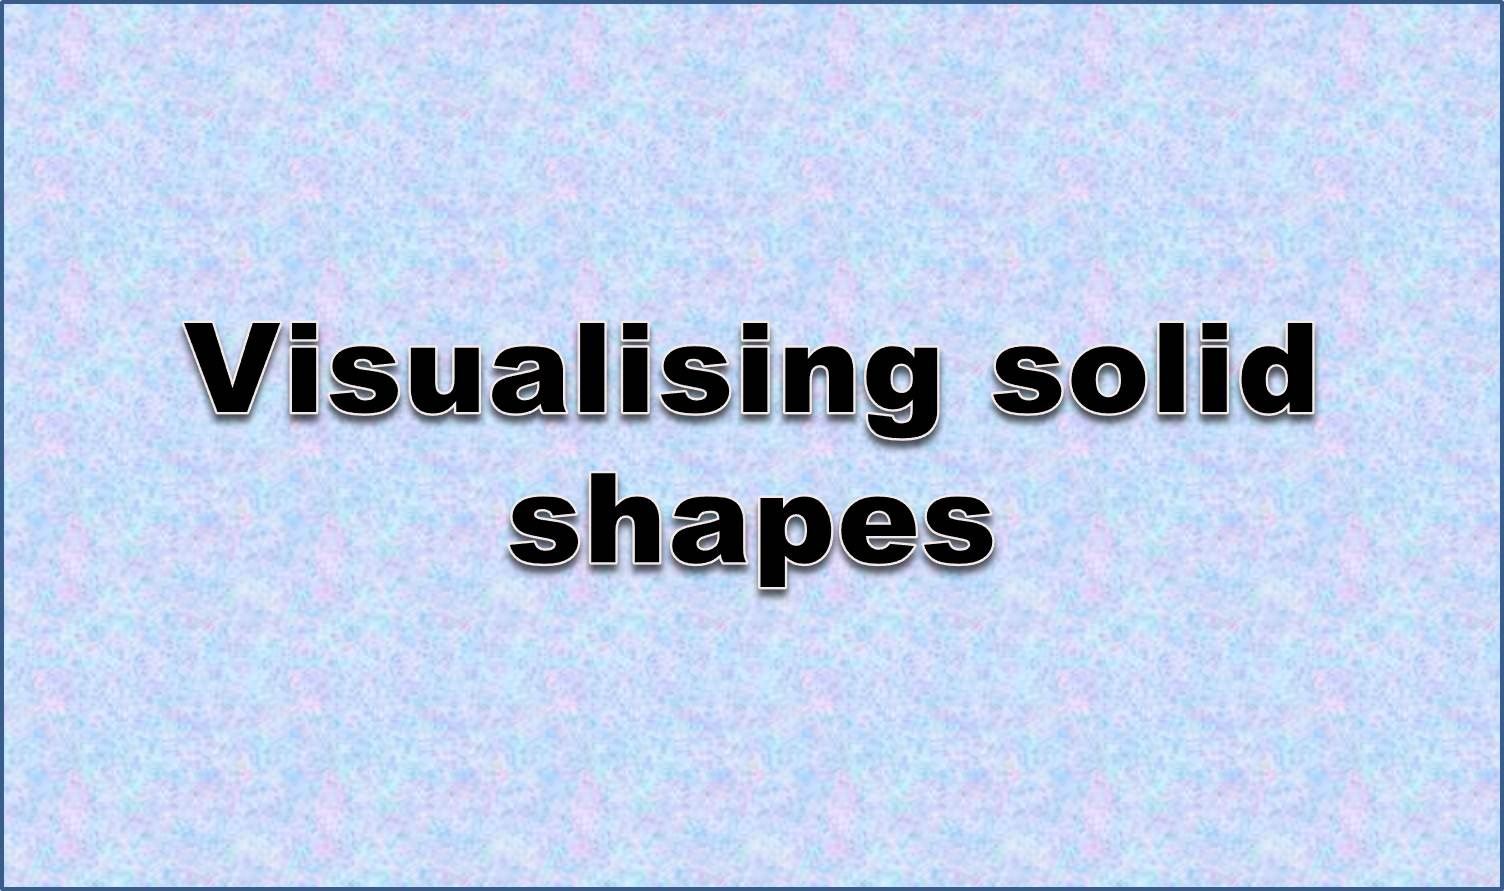 http://study.aisectonline.com/images/Making a scale drawing.jpg